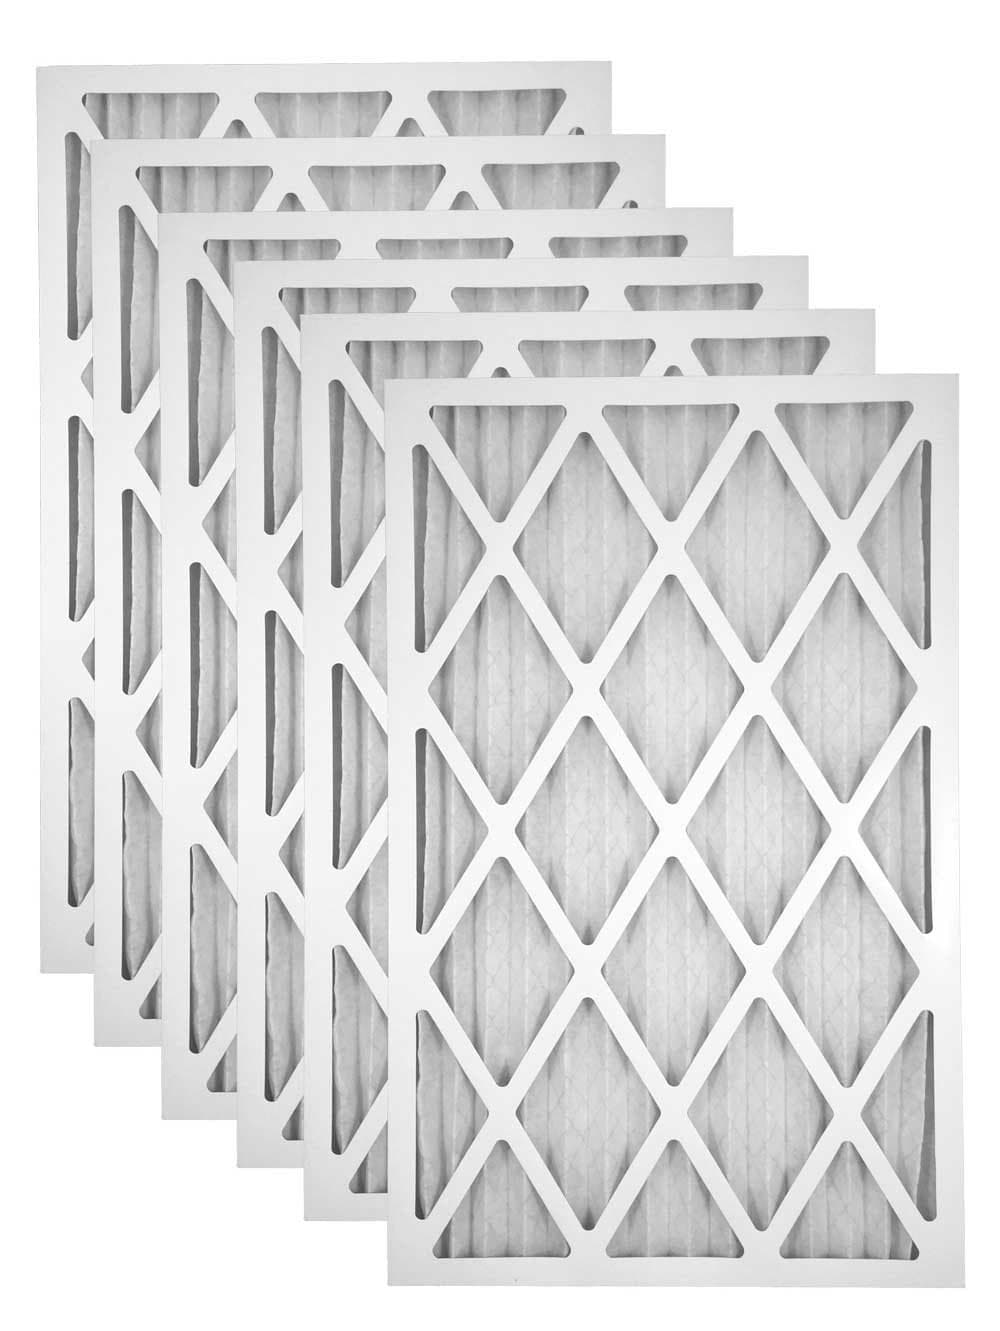 30x30x1 Merv 13 Pleated Geothermal Furnace Filter - Case of 6 by Atomic Filters